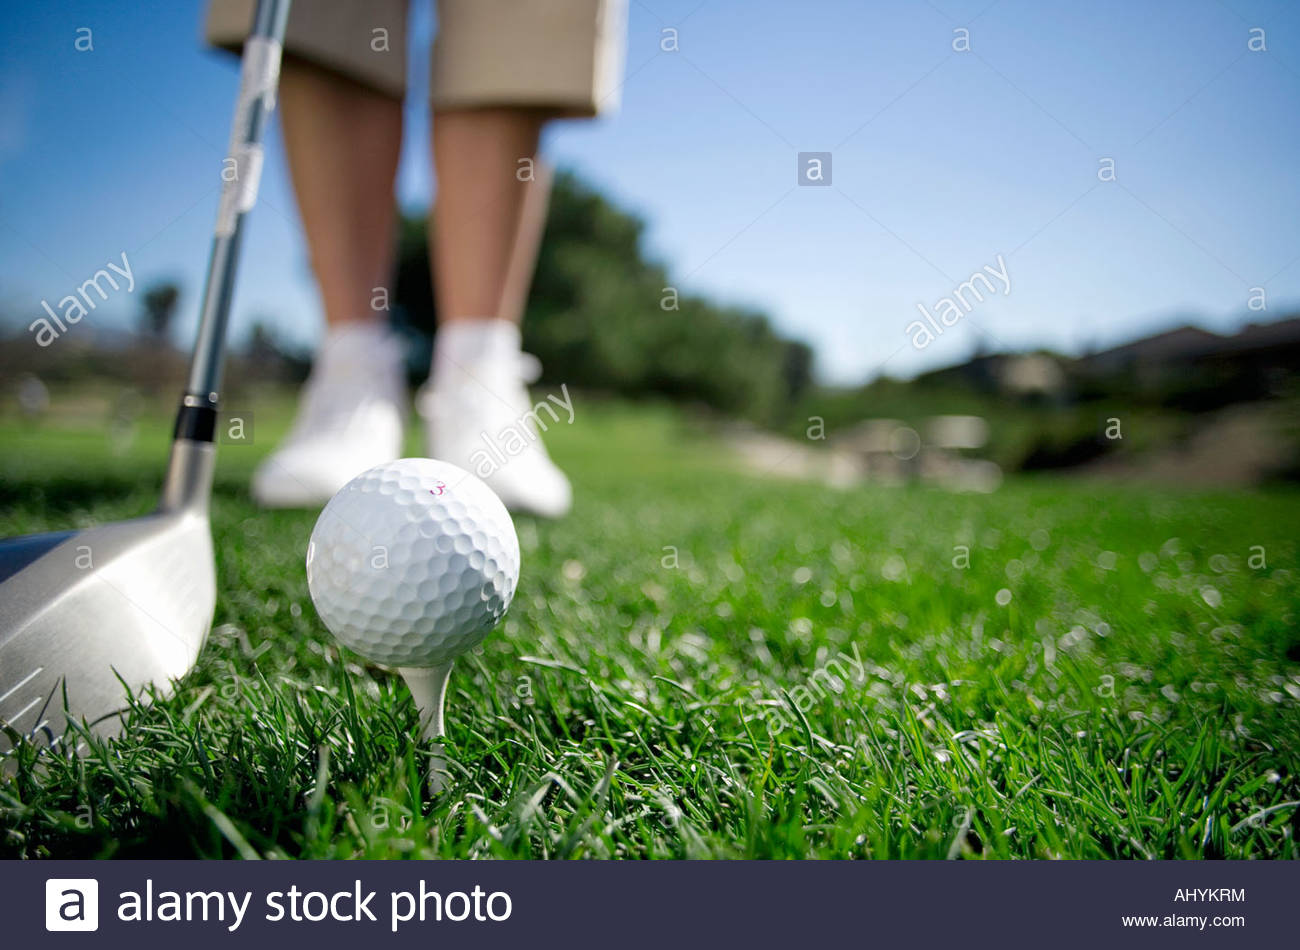 Mature woman preparing to tee off with driver on golf course, close-up, low section, focus on golf ball in foreground - Stock Image